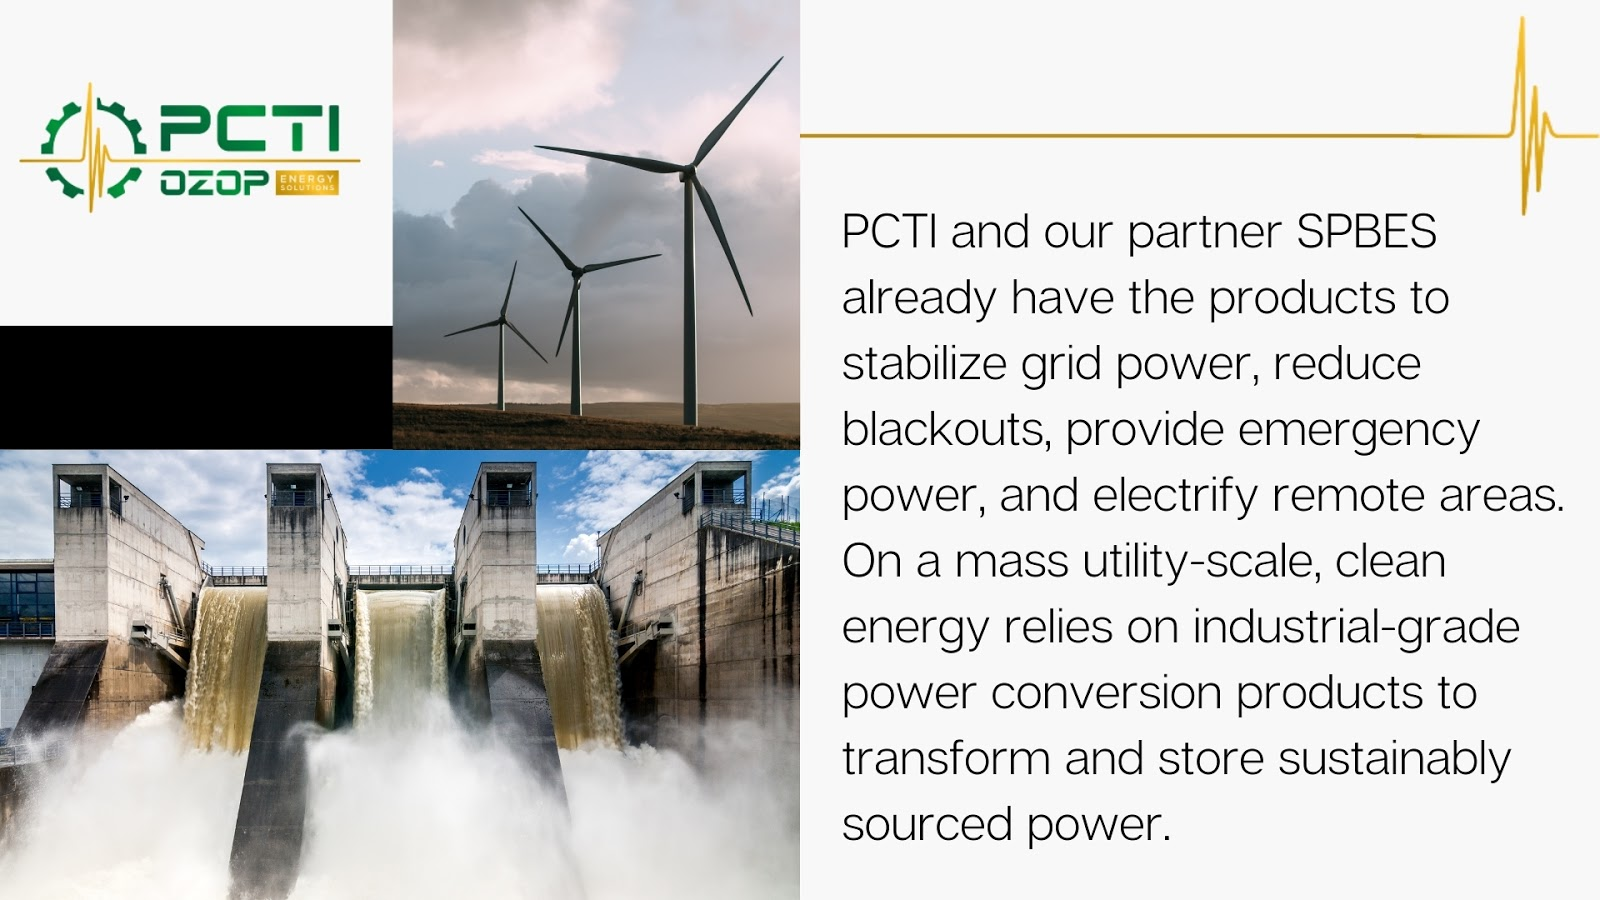 PCTI and SPBES already have the products to stabilize grid power, reduce blackouts, provide emergency power, and electrify remote areas